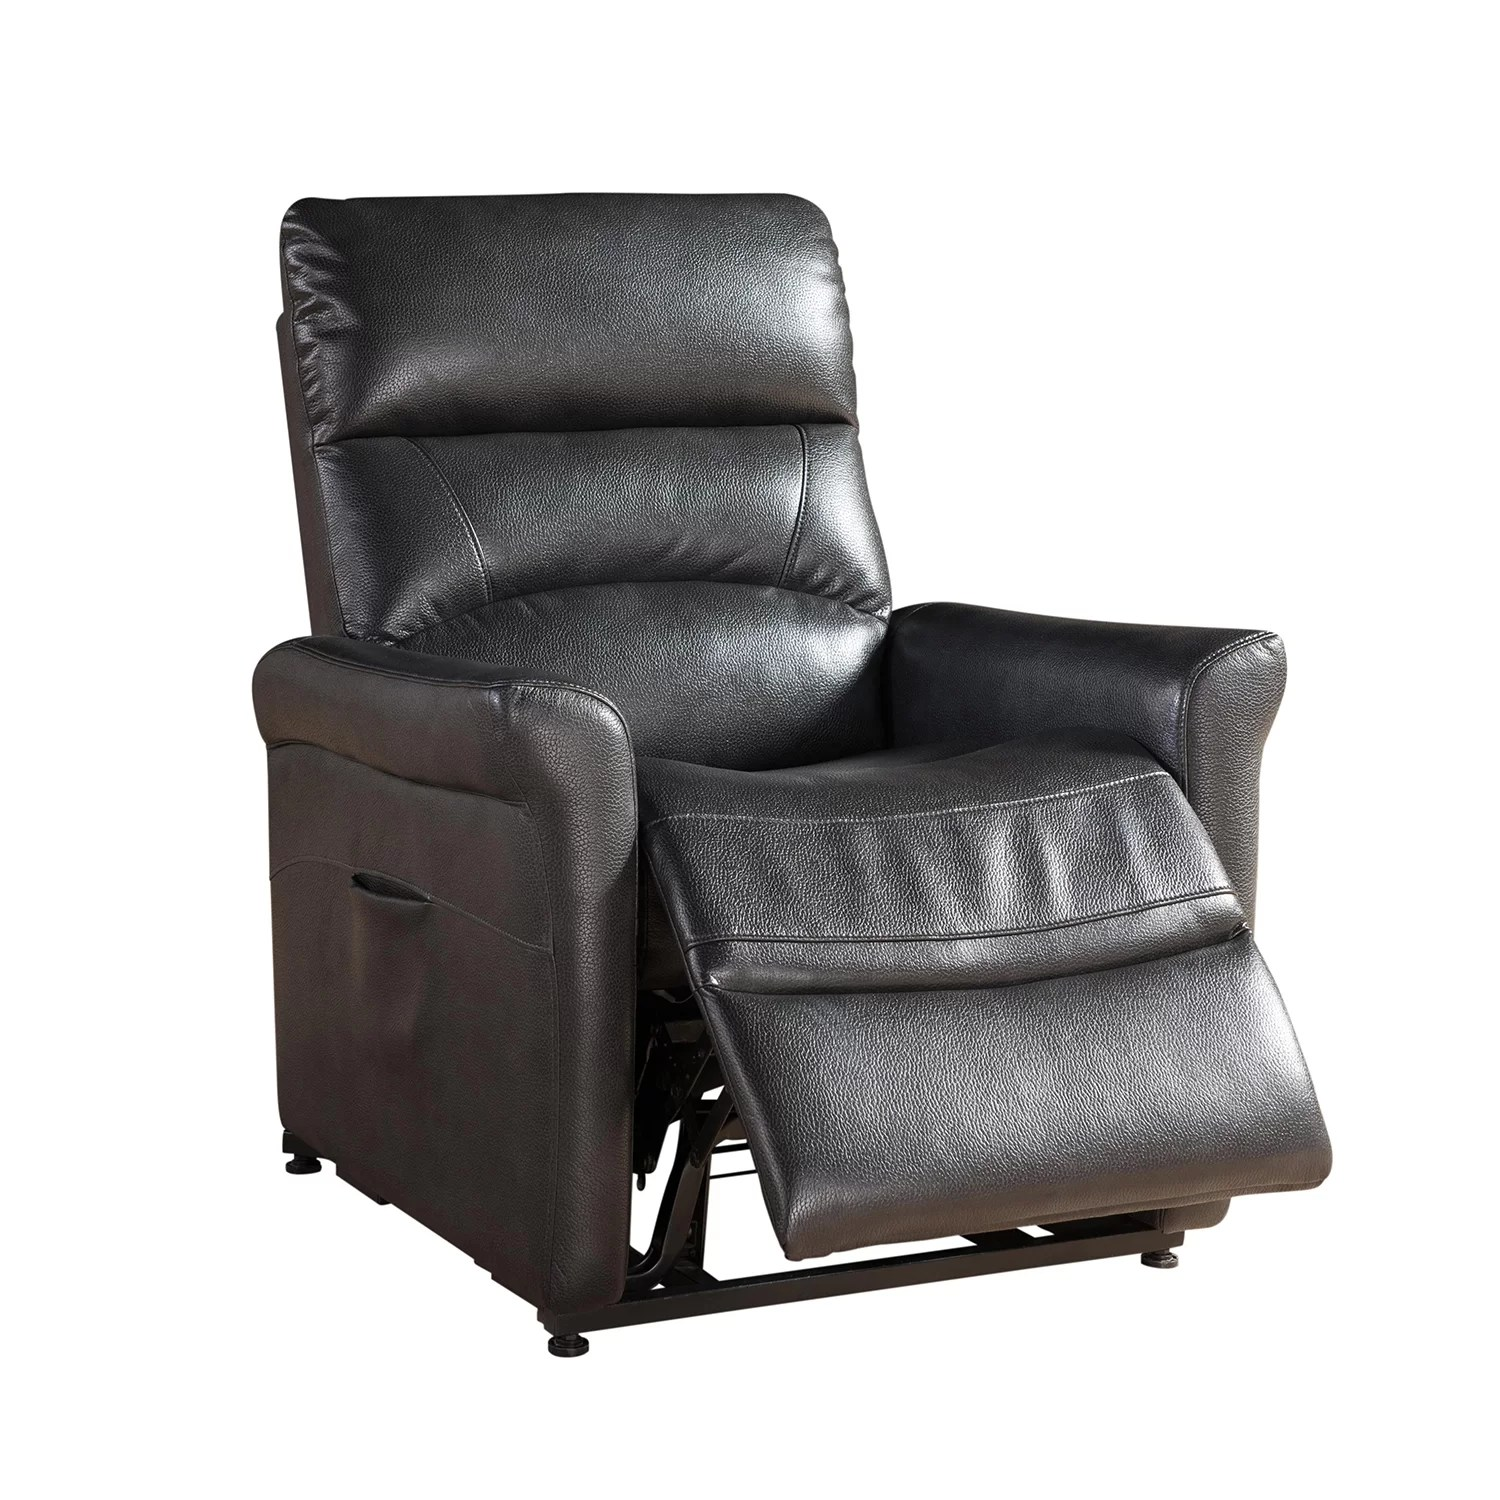 Power Reclining Chairs Ac Pacific Colby Large Power Reclining Lift Chair Wayfair Ca